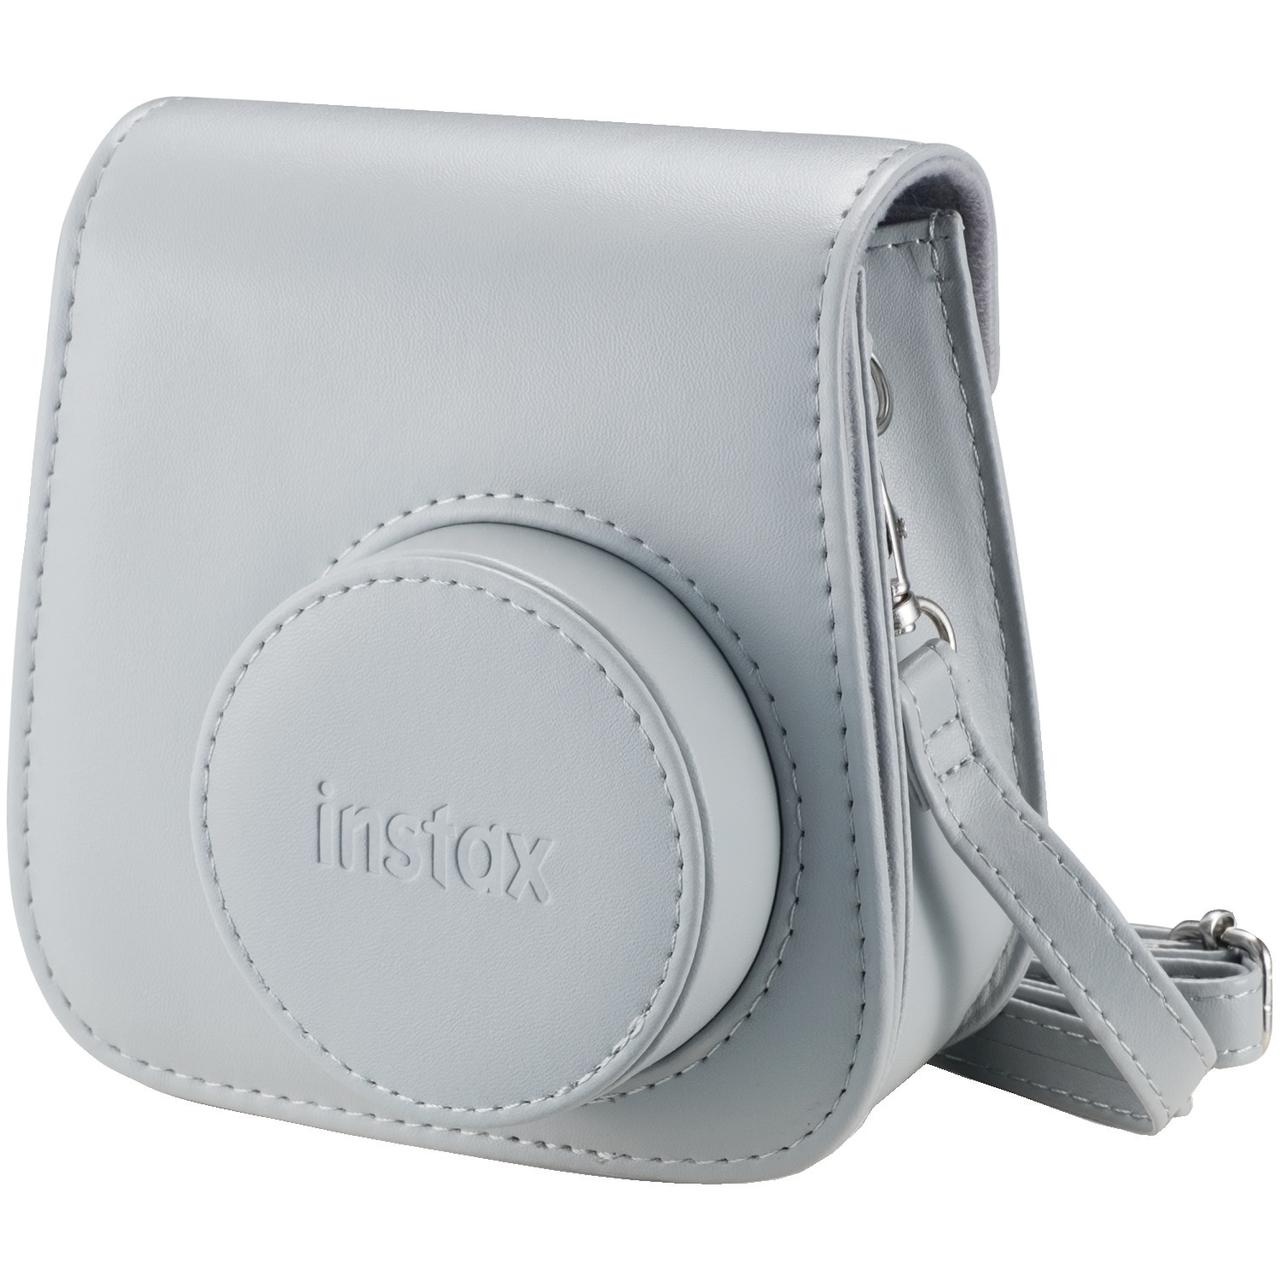 Fujifilm Groovy Camera Case for Instax Mini 9, Smokey White